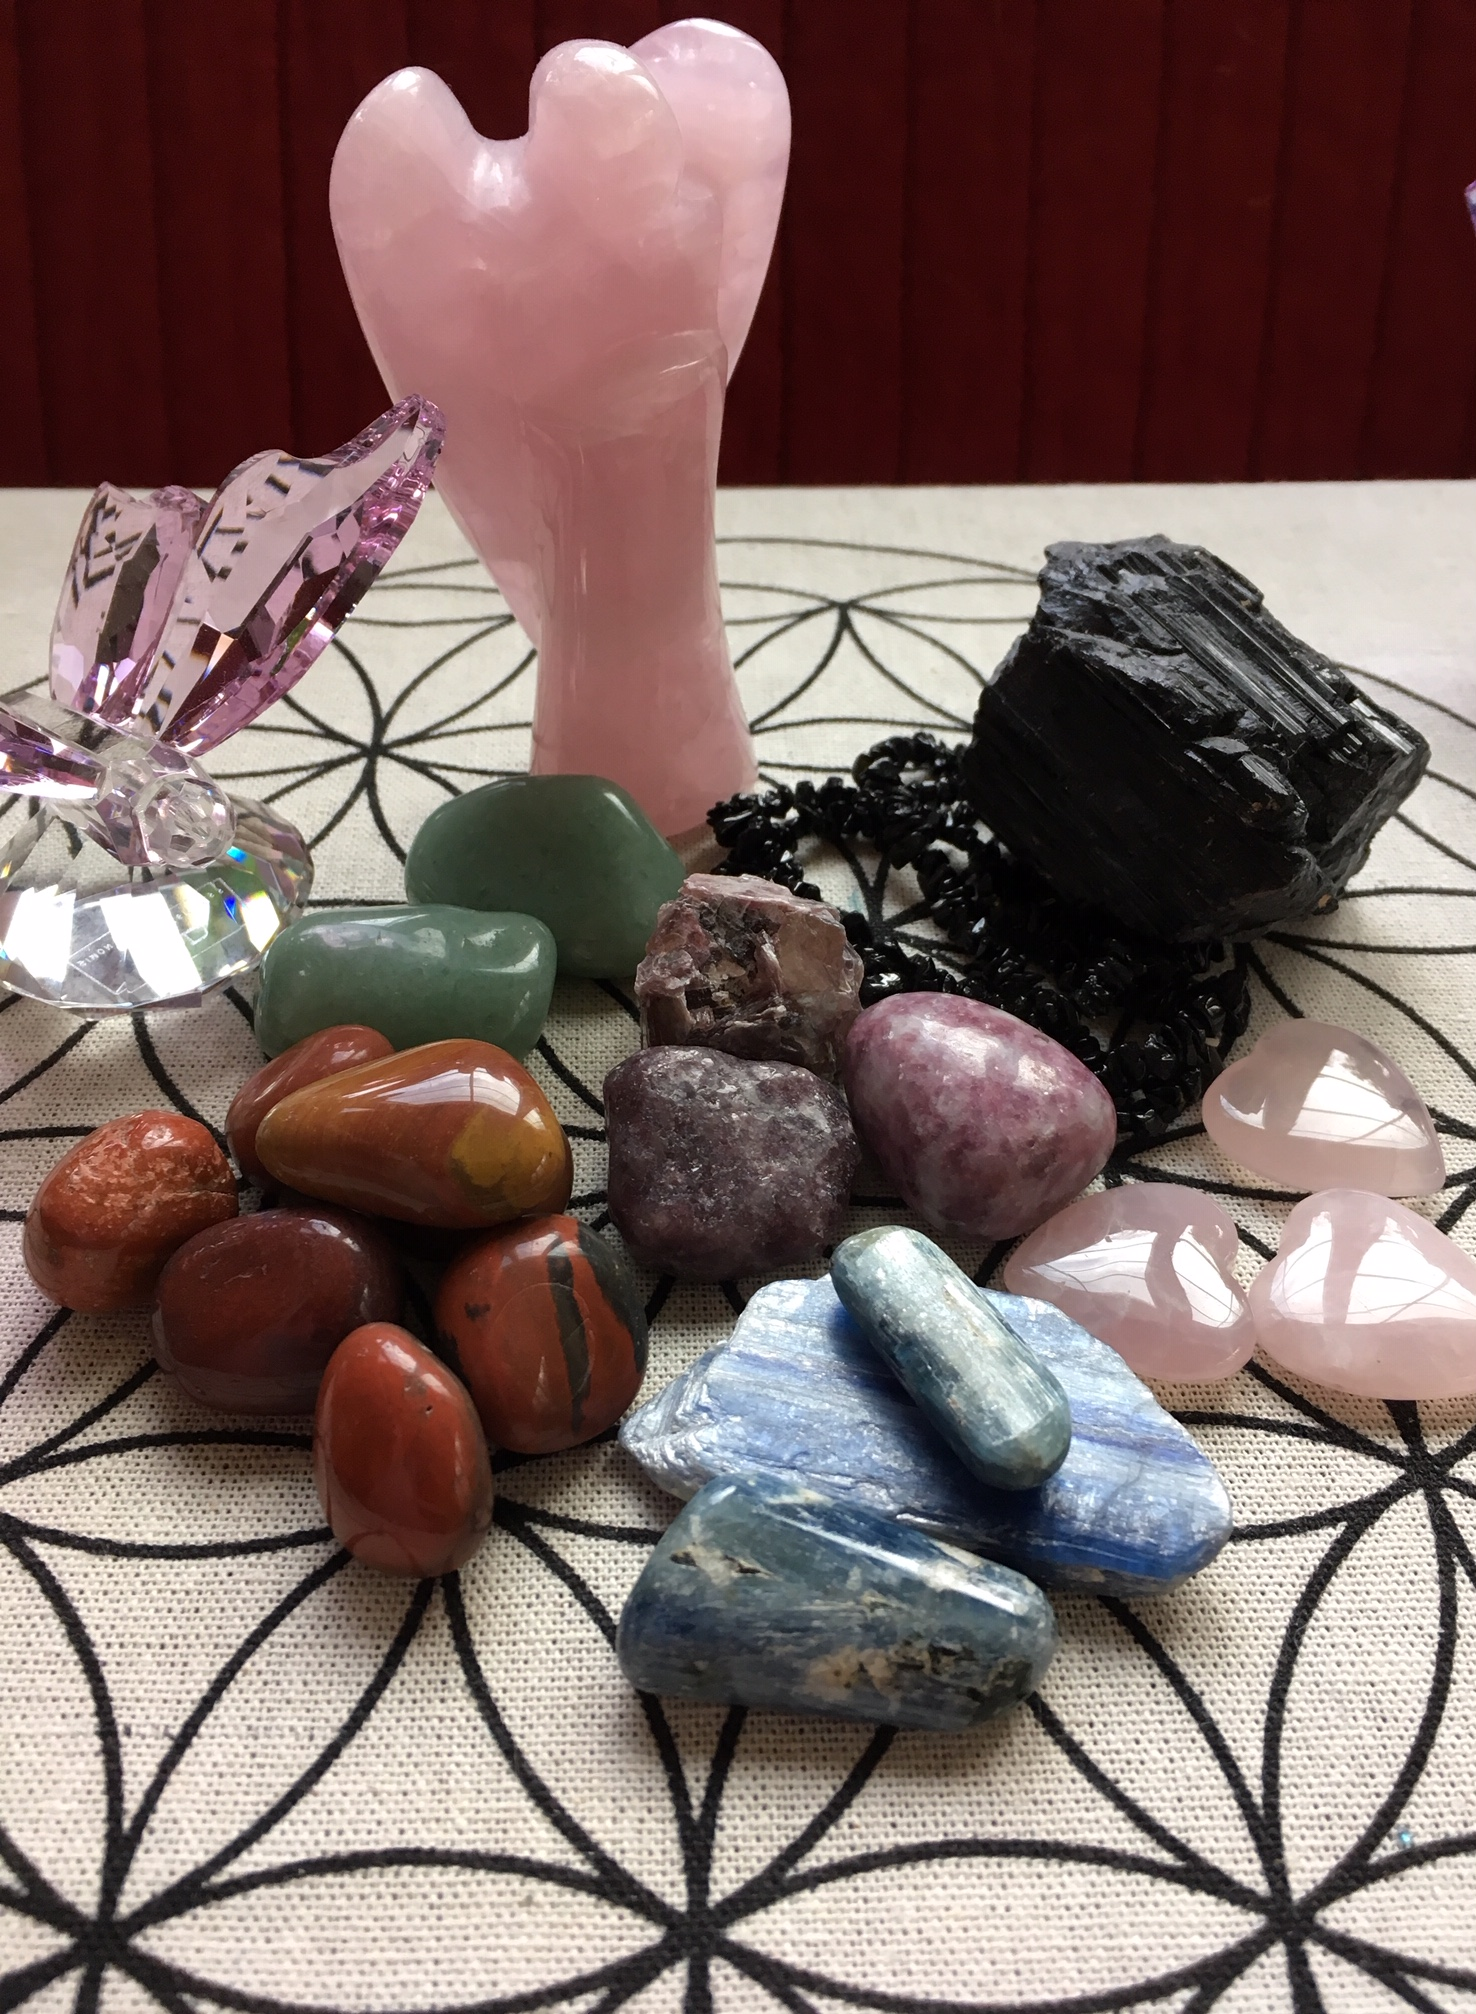 Crystals for Balance during the Holiday Season by Kathleen Johnson